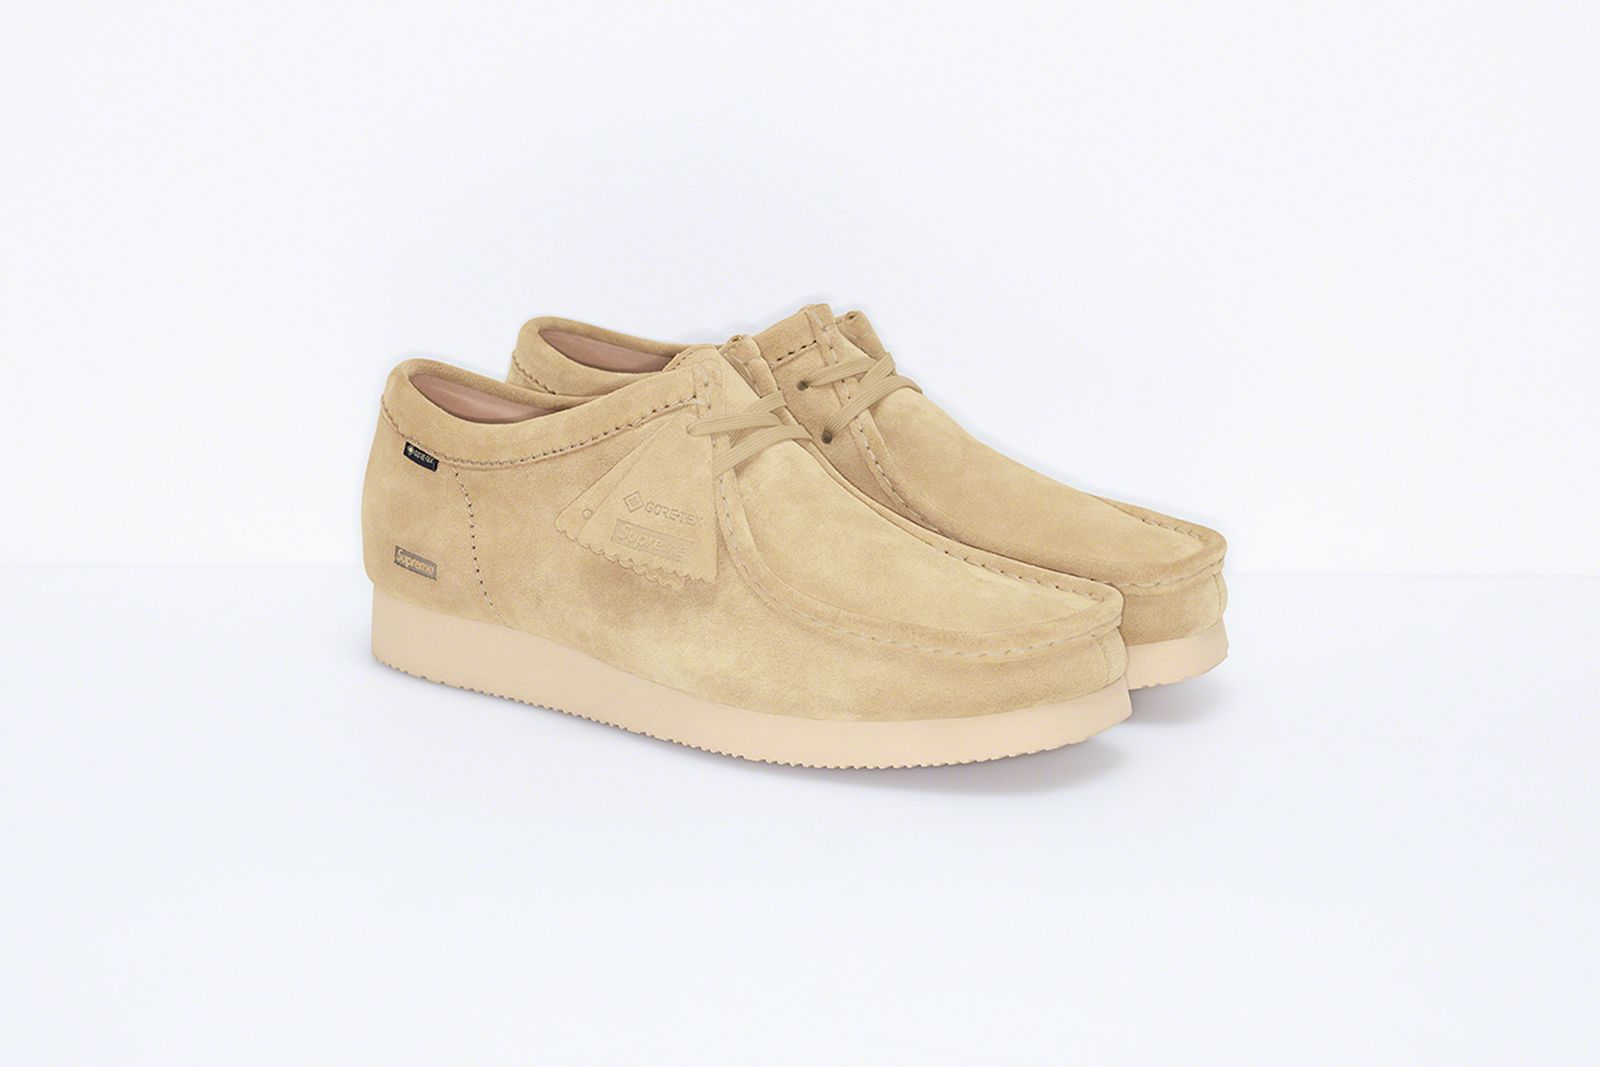 Supreme x Clarks Wallabee Fall 2019